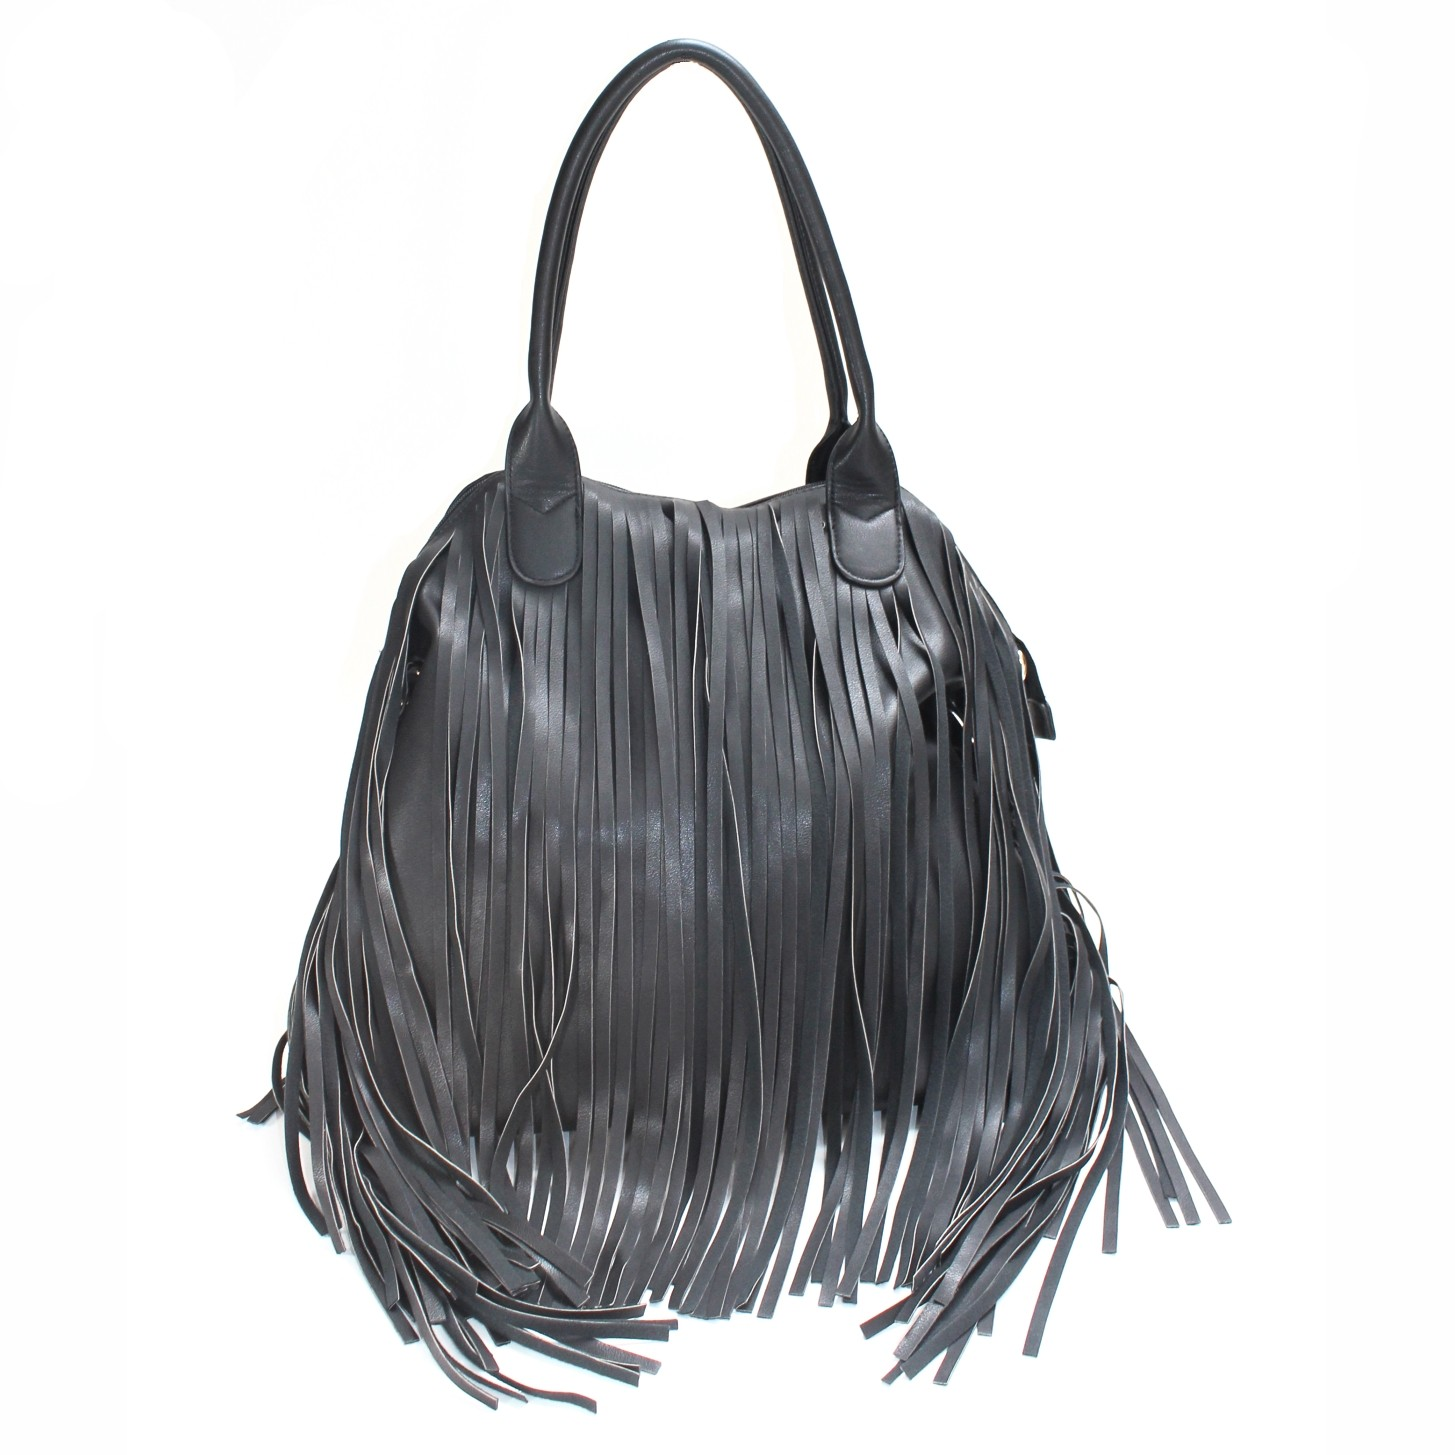 Shop Black Fringe Handbags at eBags - experts in bags and accessories since We offer easy returns, expert advice, and millions of customer reviews.